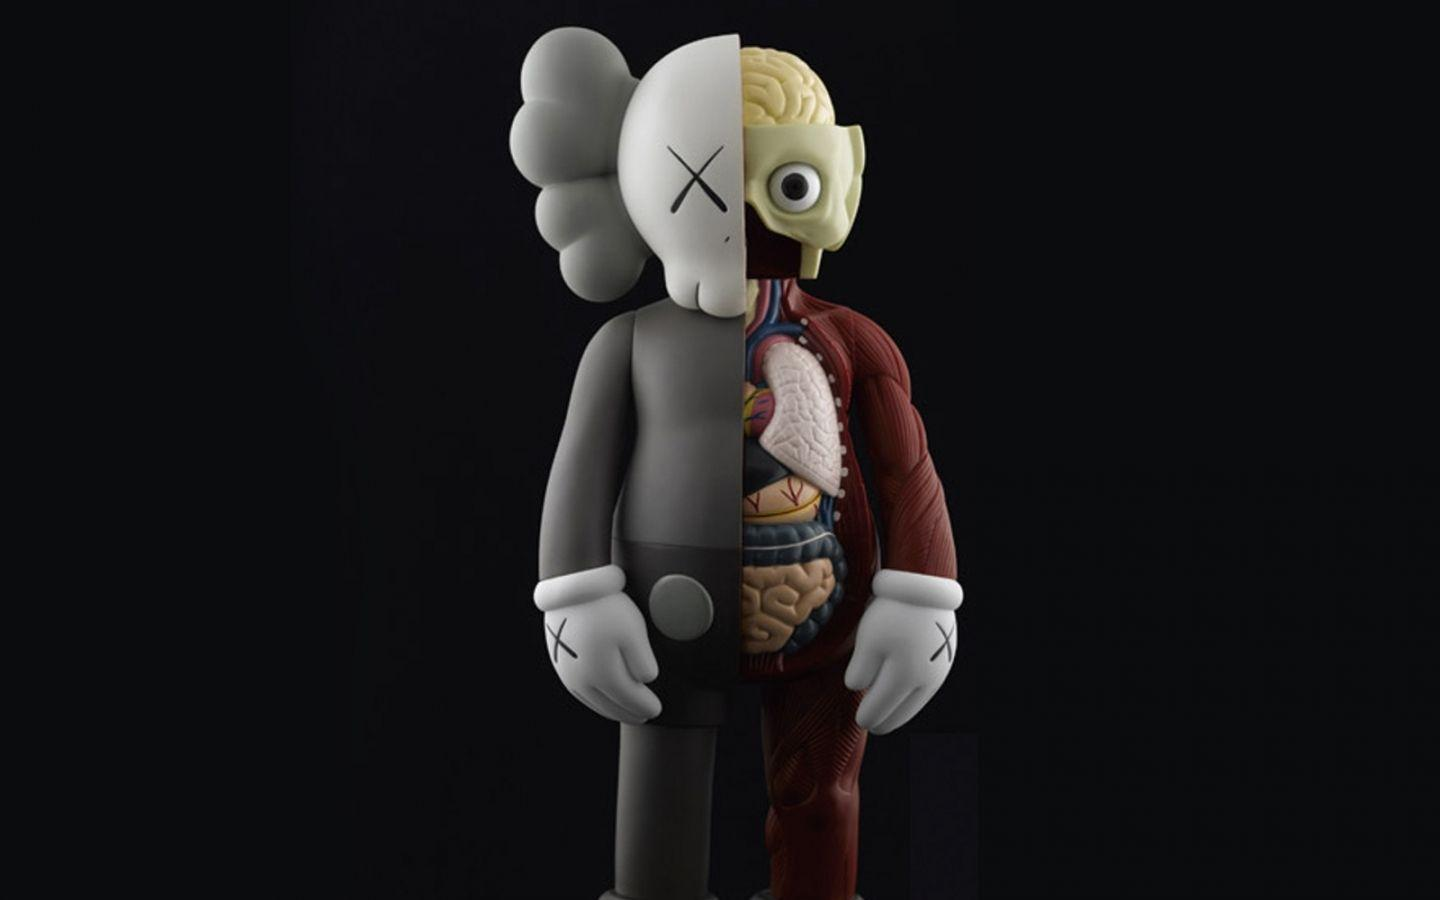 Kaws Iphone Wallpapers Top Free Kaws Iphone Backgrounds Wallpaperaccess